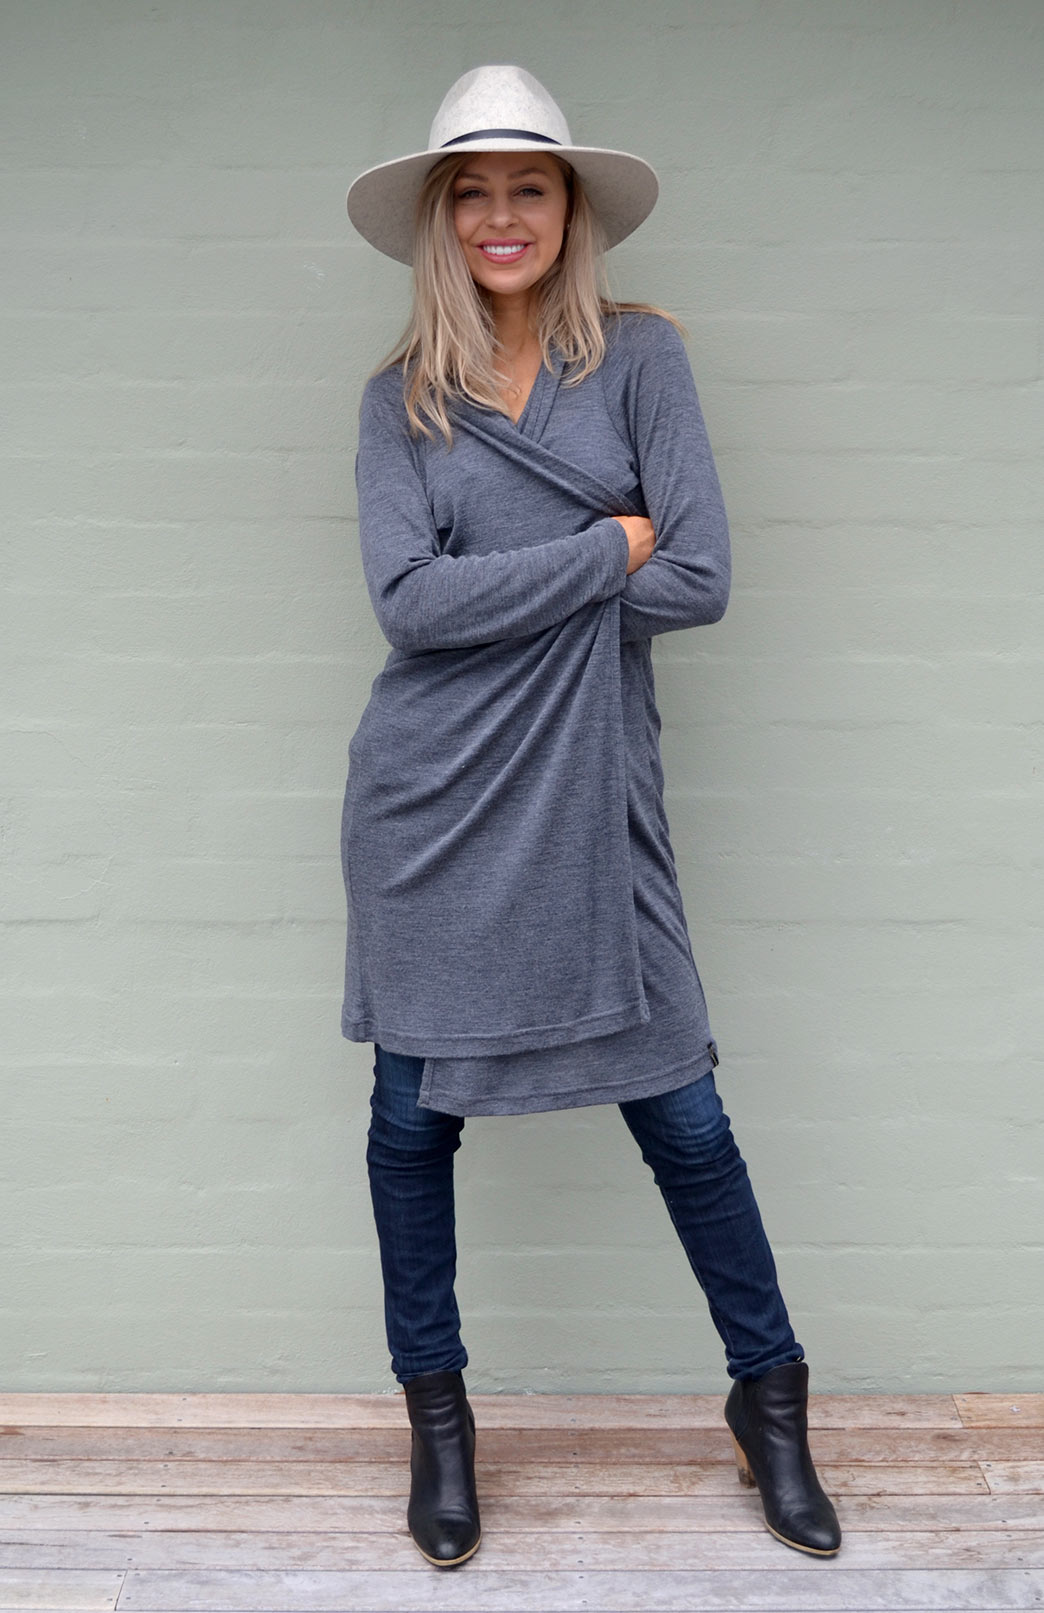 Long Drape Cardigan - Women's Grey Merino Wool Winter Long Drape Cardigan - Smitten Merino Tasmania Australia